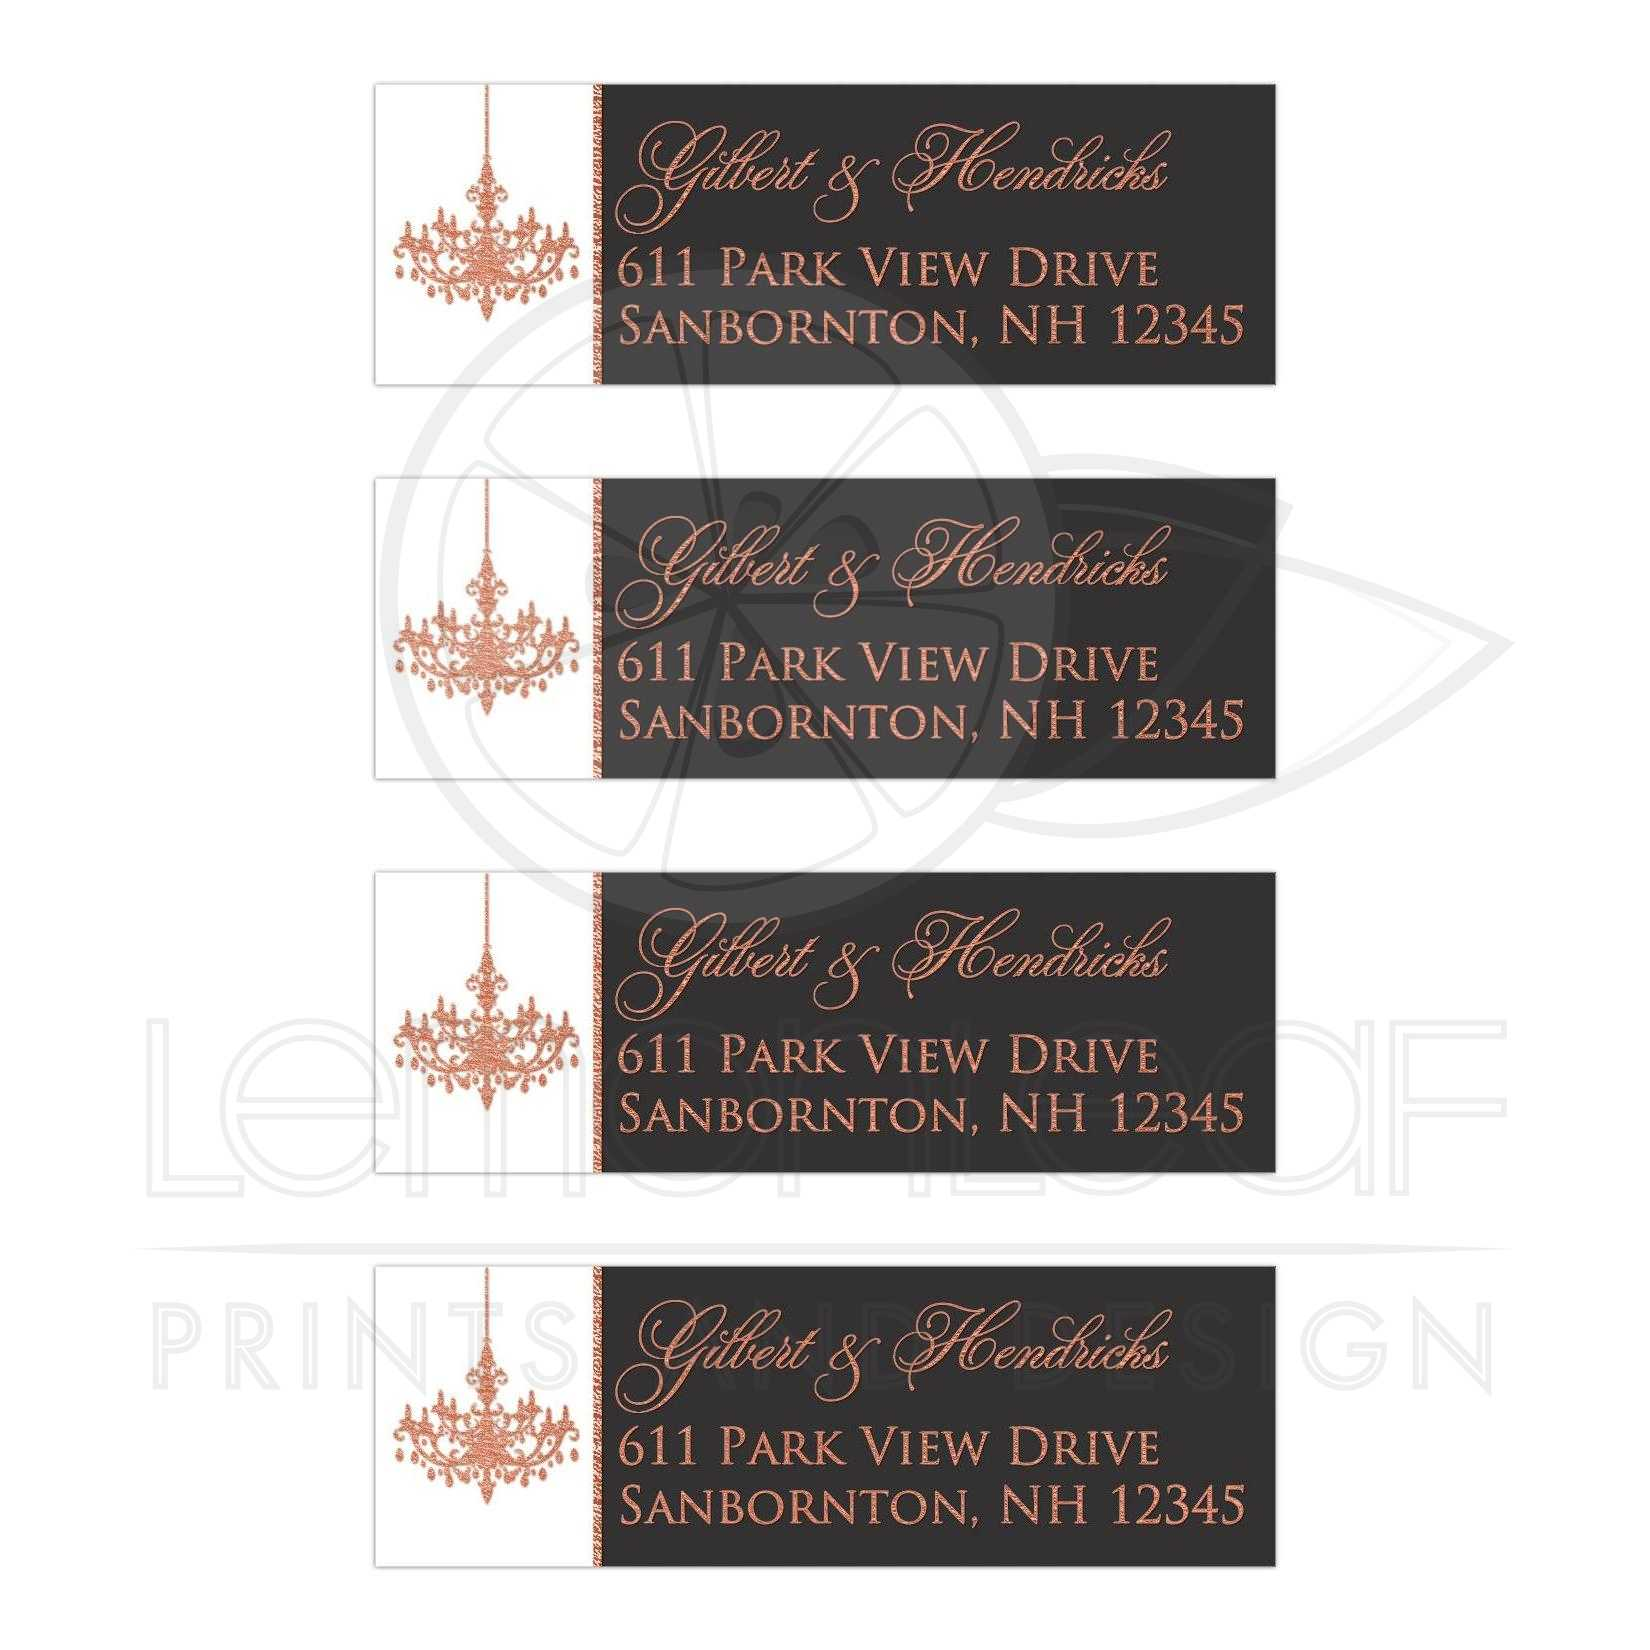 Personalized Wedding Return Address Labels In Gray White And Faux Copper Foil With A